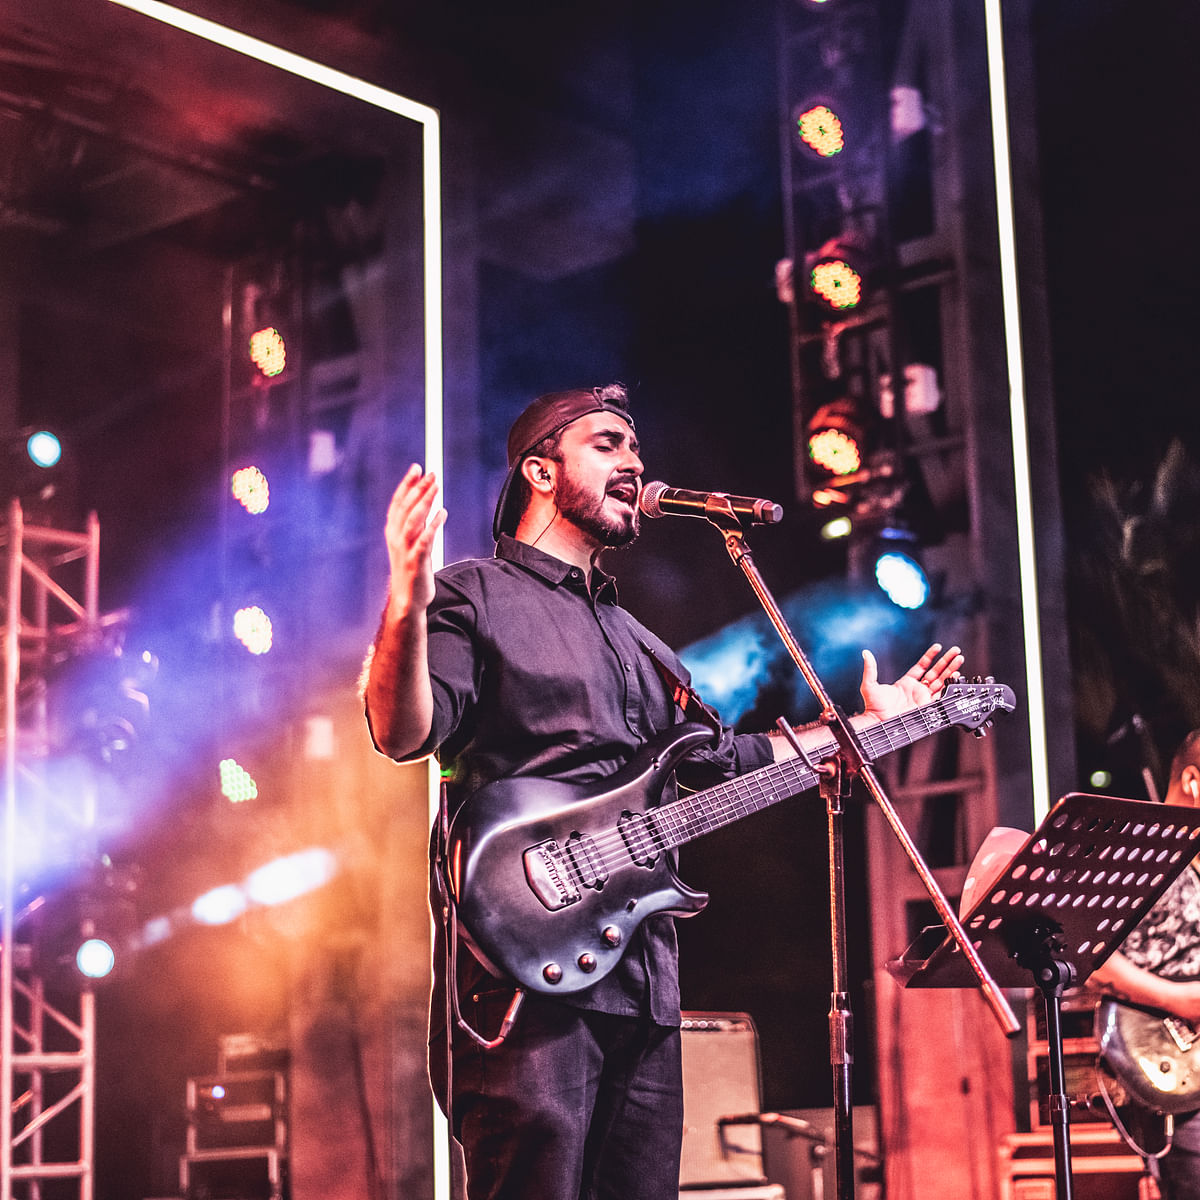 Antariksh's vocalist Varun Rajput talks about collaboration with Marty Friedman, latest single 'Quest' and more